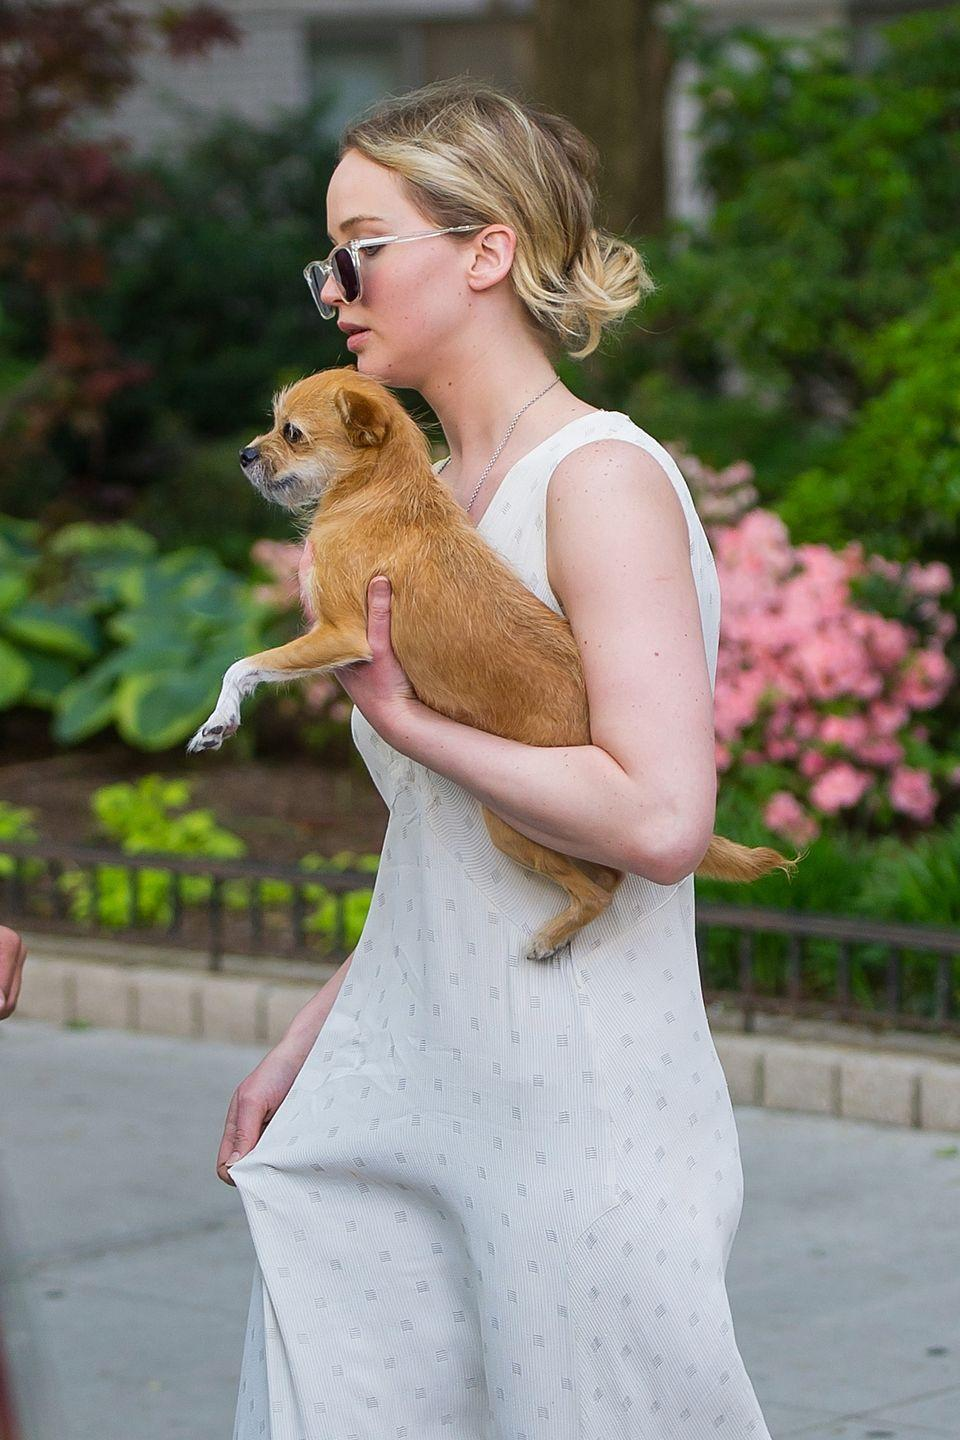 """<p>Lawrence's love for her dog, Pippi, knows no bounds. In her 2017 cover interview with <a href=""""https://www.vogue.com/article/jennifer-lawrence-vogue-september-issue-2017-cover"""" rel=""""nofollow noopener"""" target=""""_blank"""" data-ylk=""""slk:Vogue"""" class=""""link rapid-noclick-resp"""">Vogue</a>, it was revealed that an oil painting of Pippi hangs in the Silver Linings Playbook actresses' living room. </p>"""